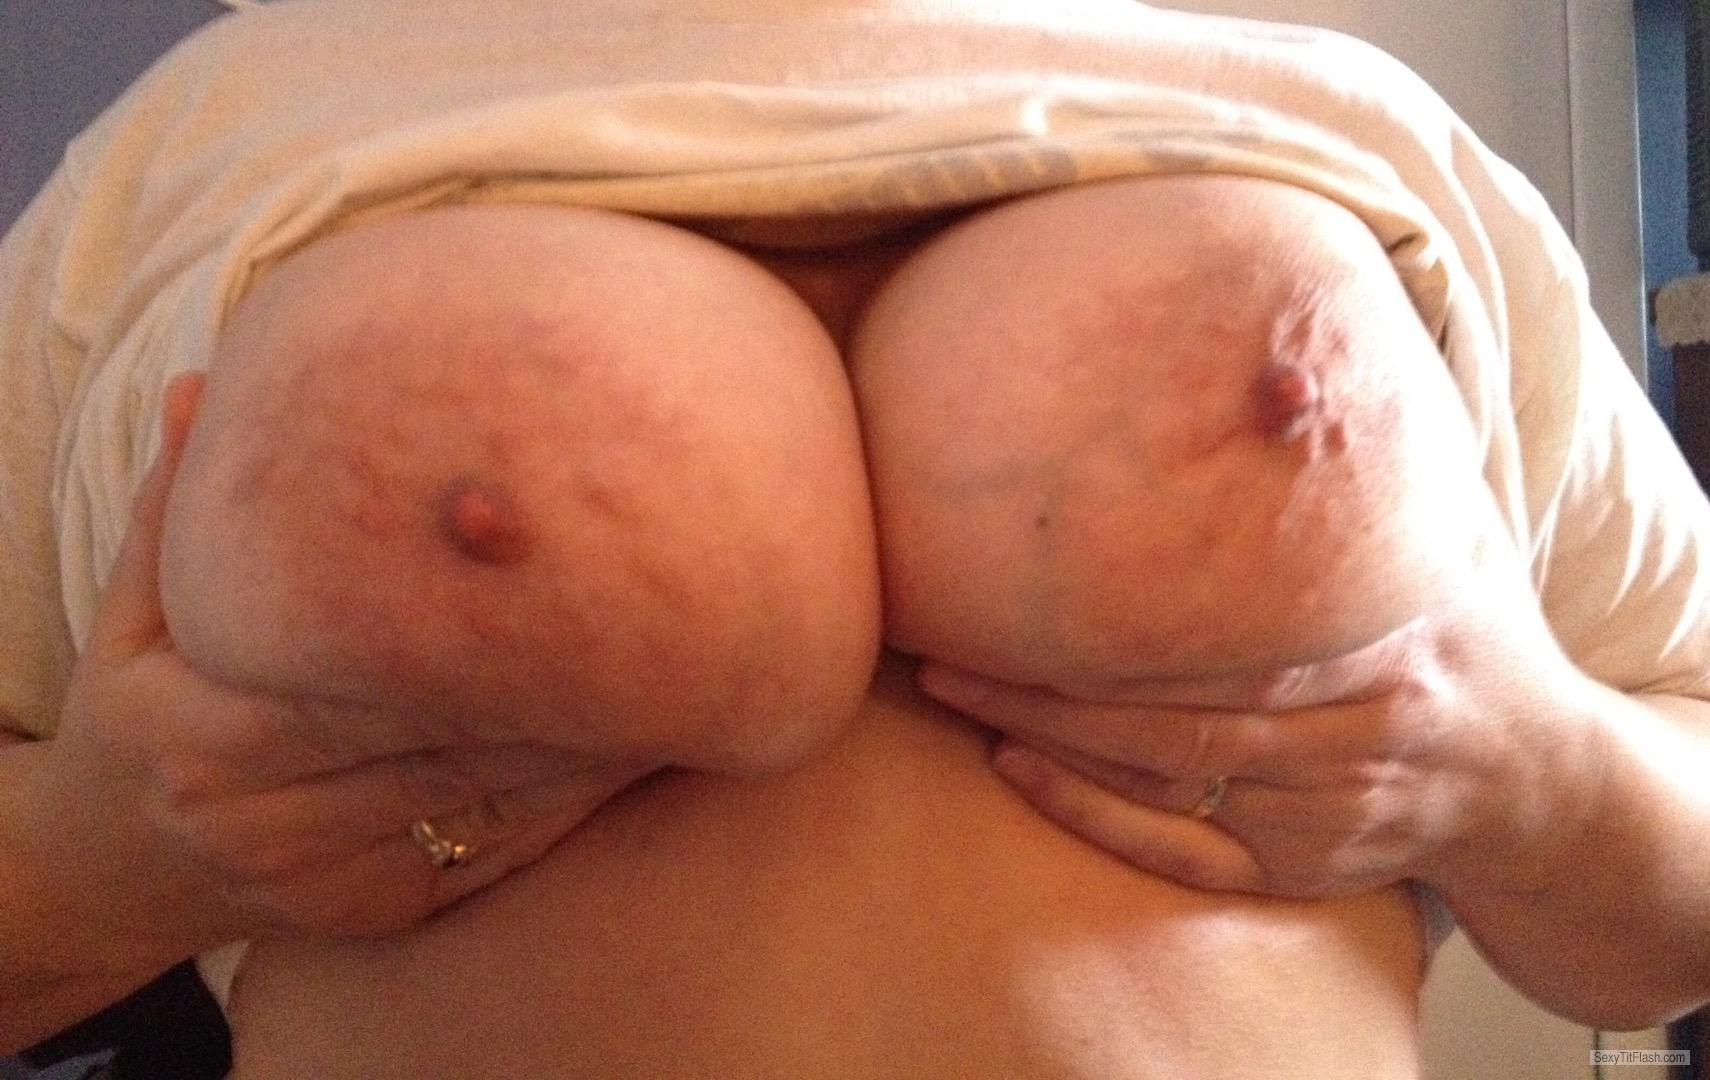 Tit Flash: My Big Tits - Mytitsforyourcock from United States